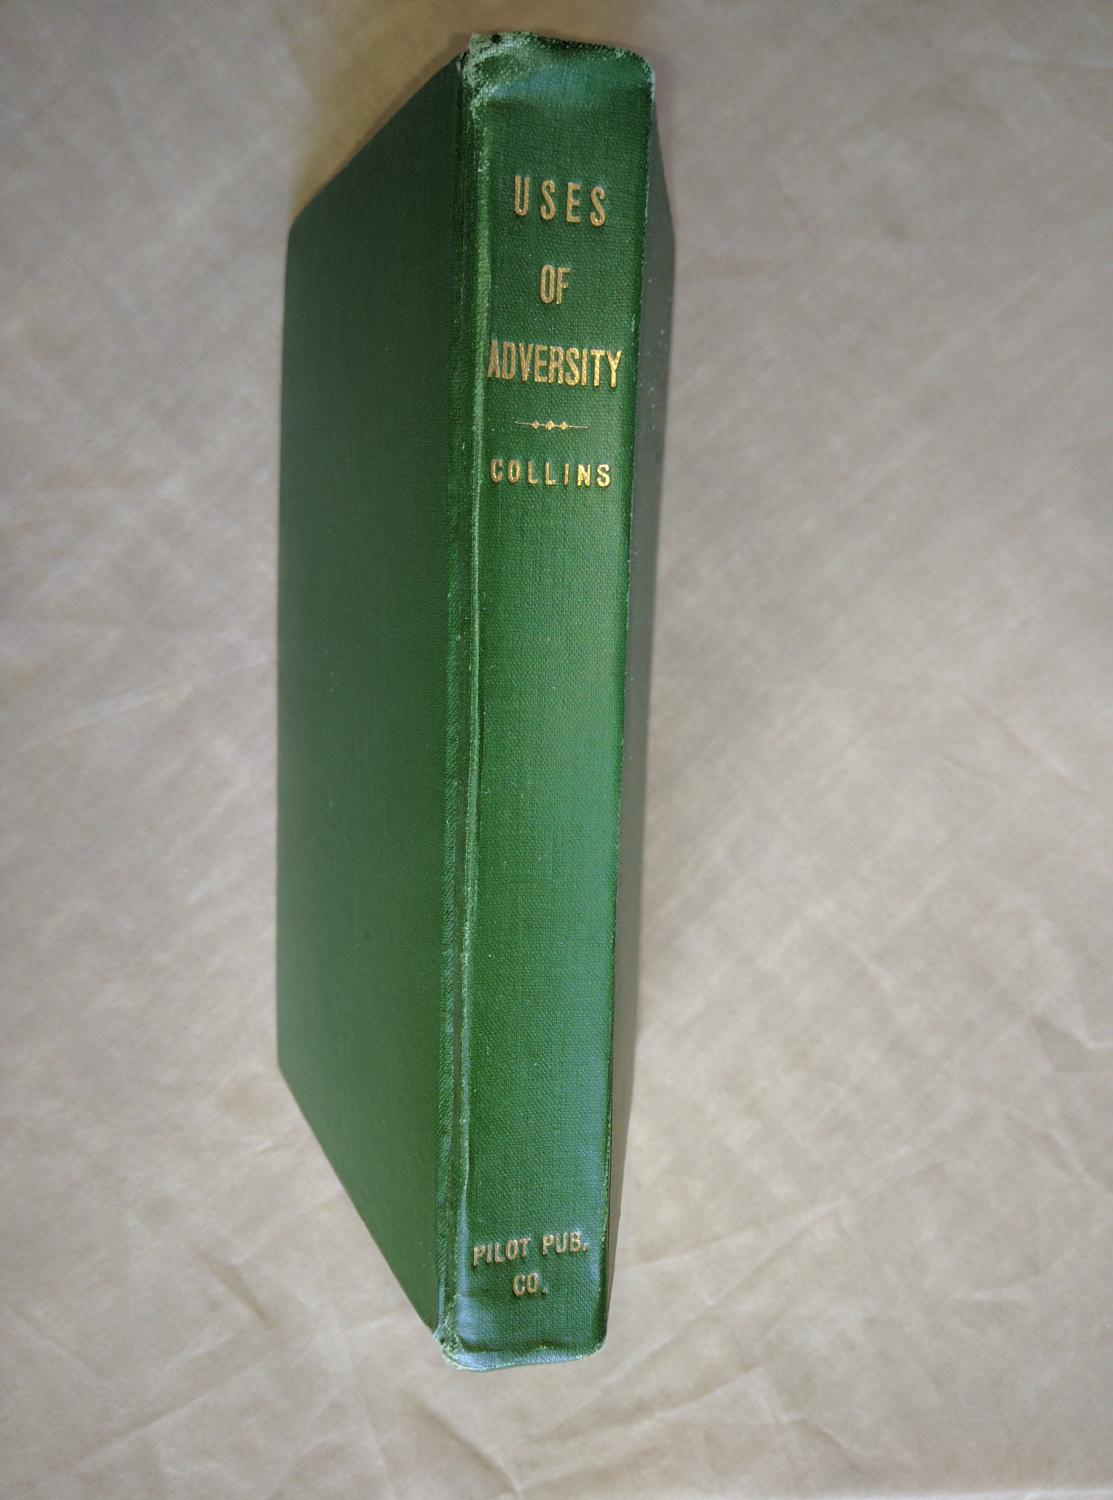 the uses of adversity and other essays by charles w collins boston   the uses of adversity and other essays charles w collins